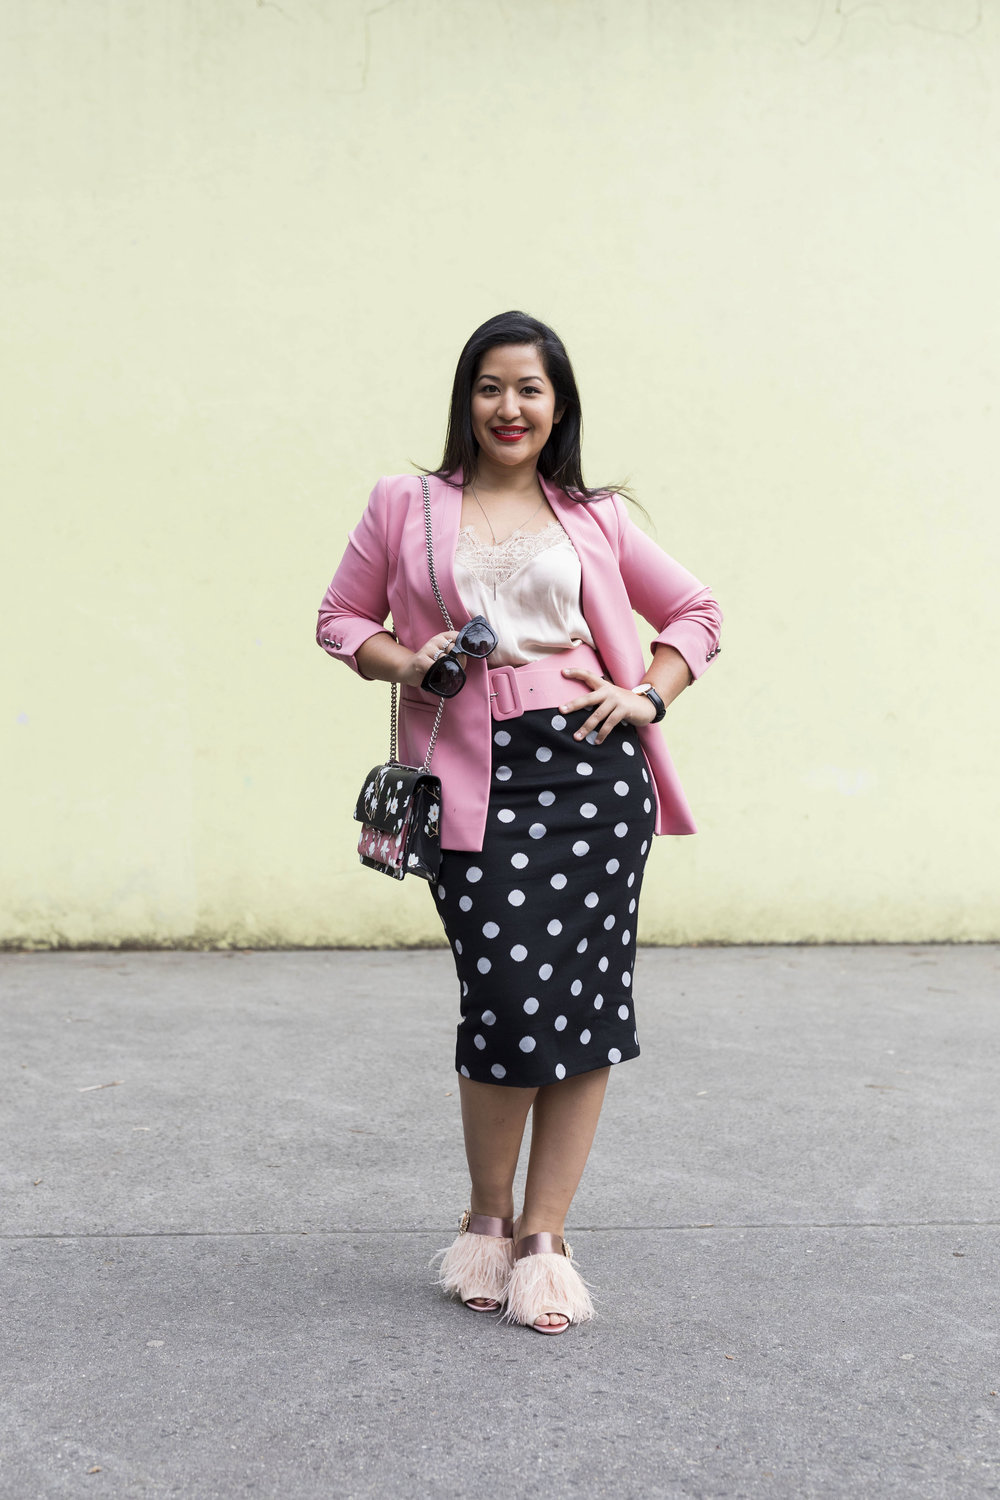 Krity S x Polka Dot and Pink Work Outfit4.jpg